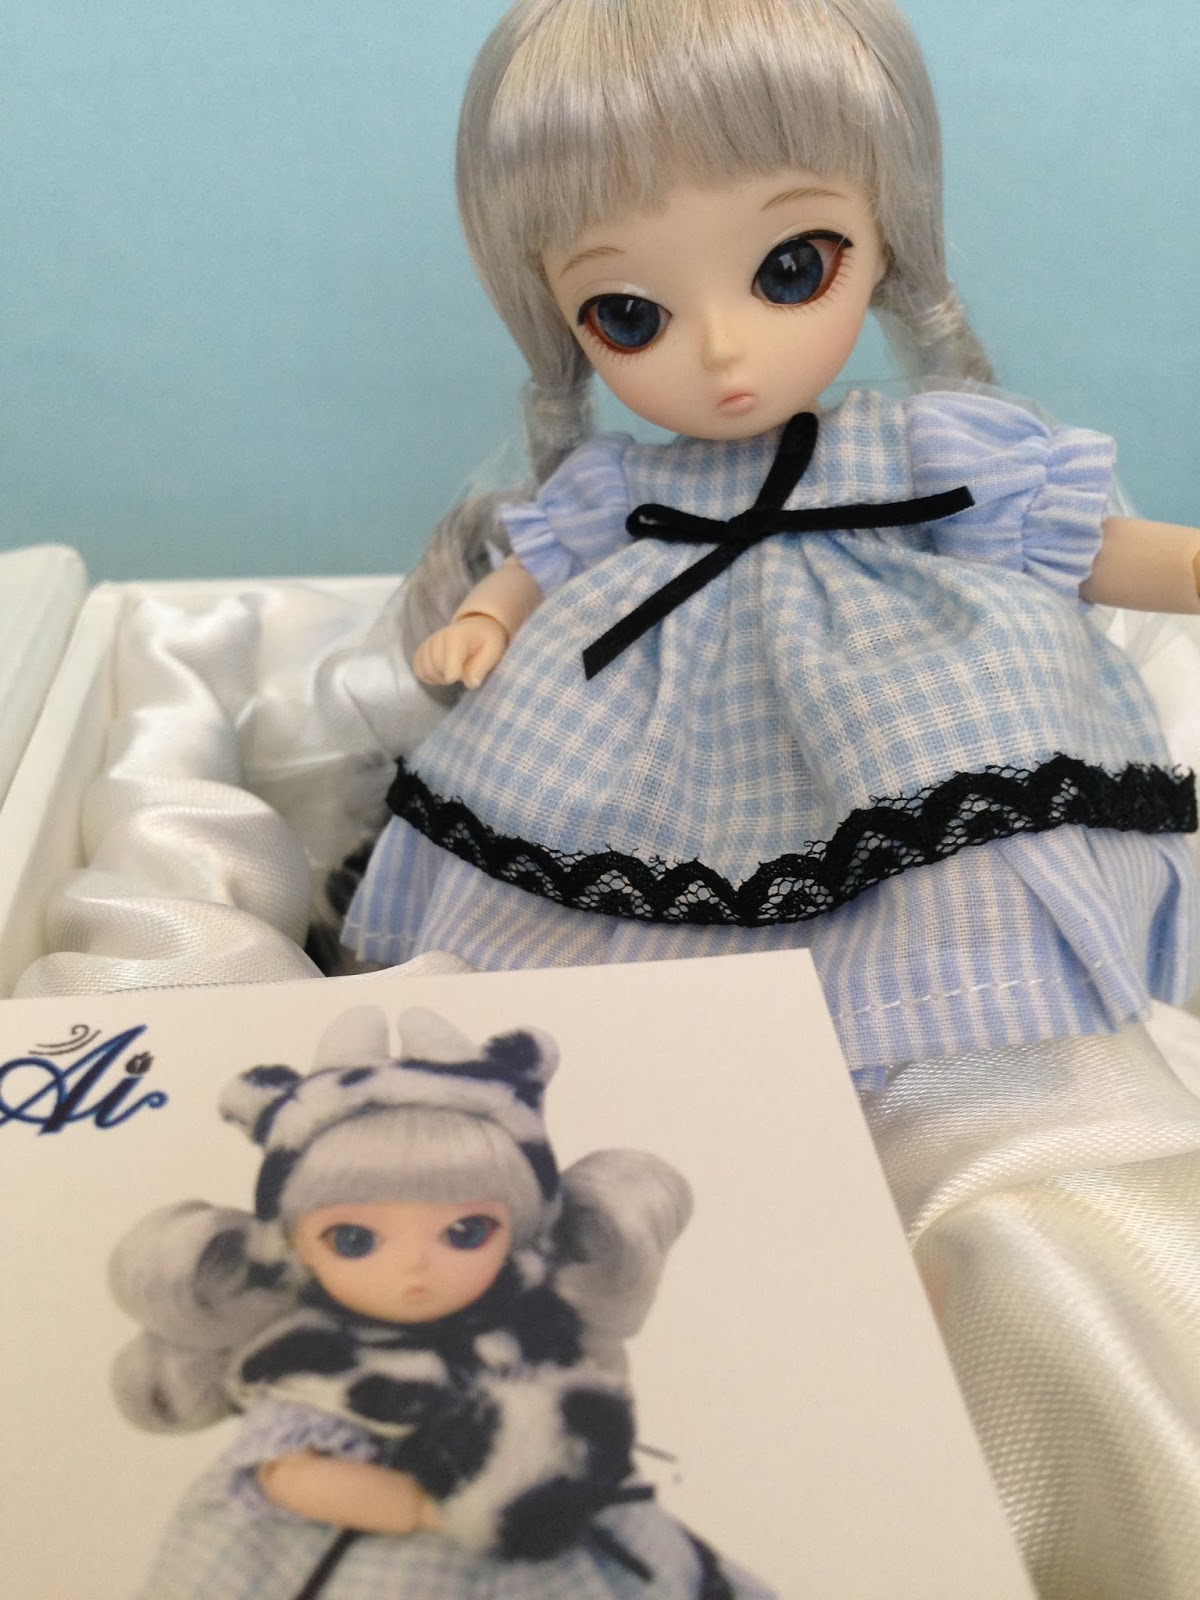 Utv Blue Book >> Once Upon A Doll Collection : Ball Jointed Dolls Found at Tuesday Morning